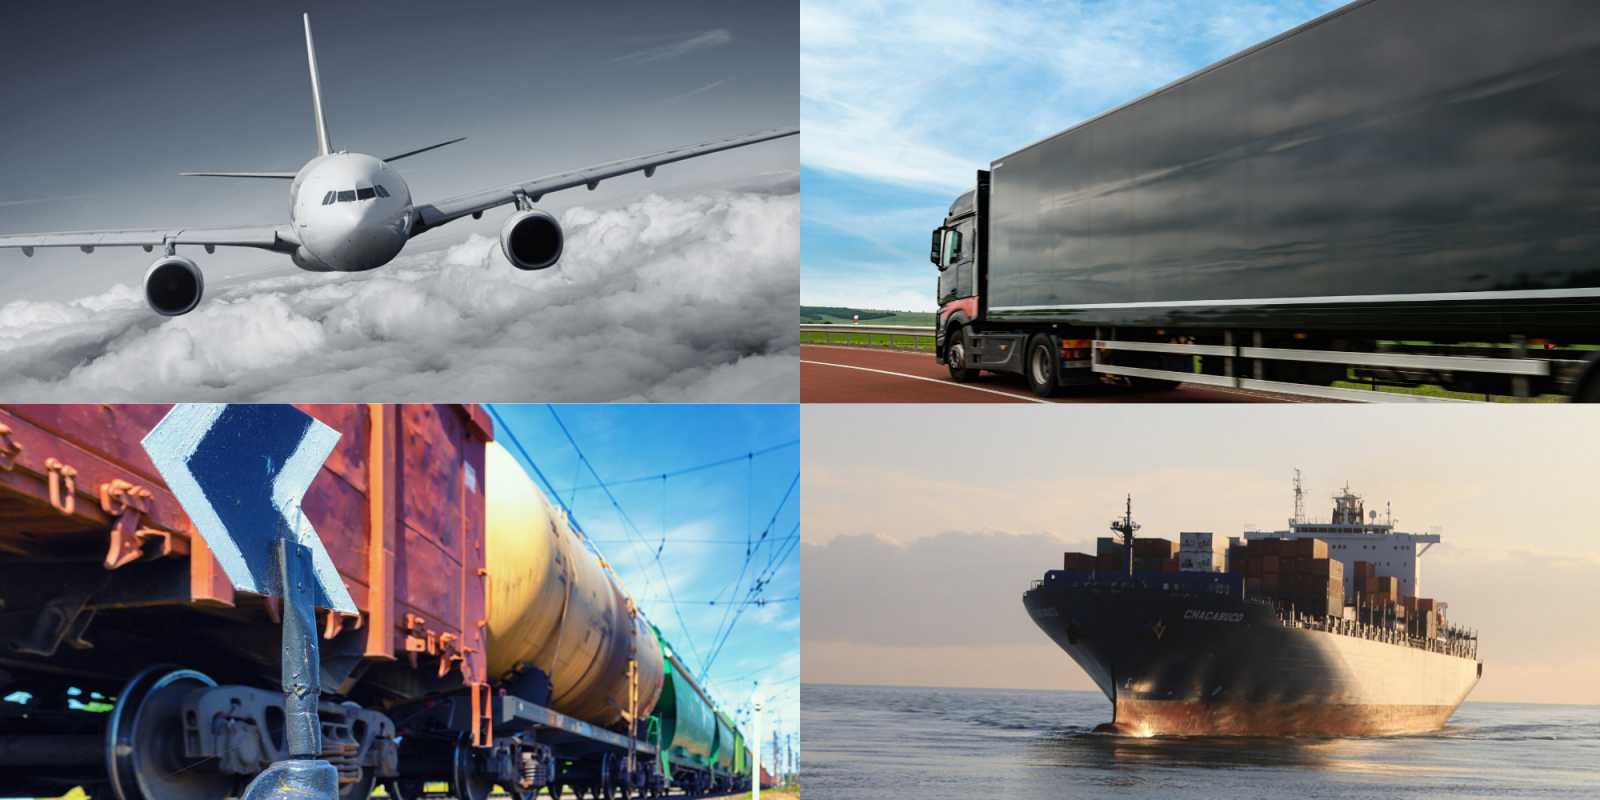 Be it by air, ship, truck or rail, Summit Customs Brokers & Trade Consultants provides reliable, personalized service for all your importing needs.